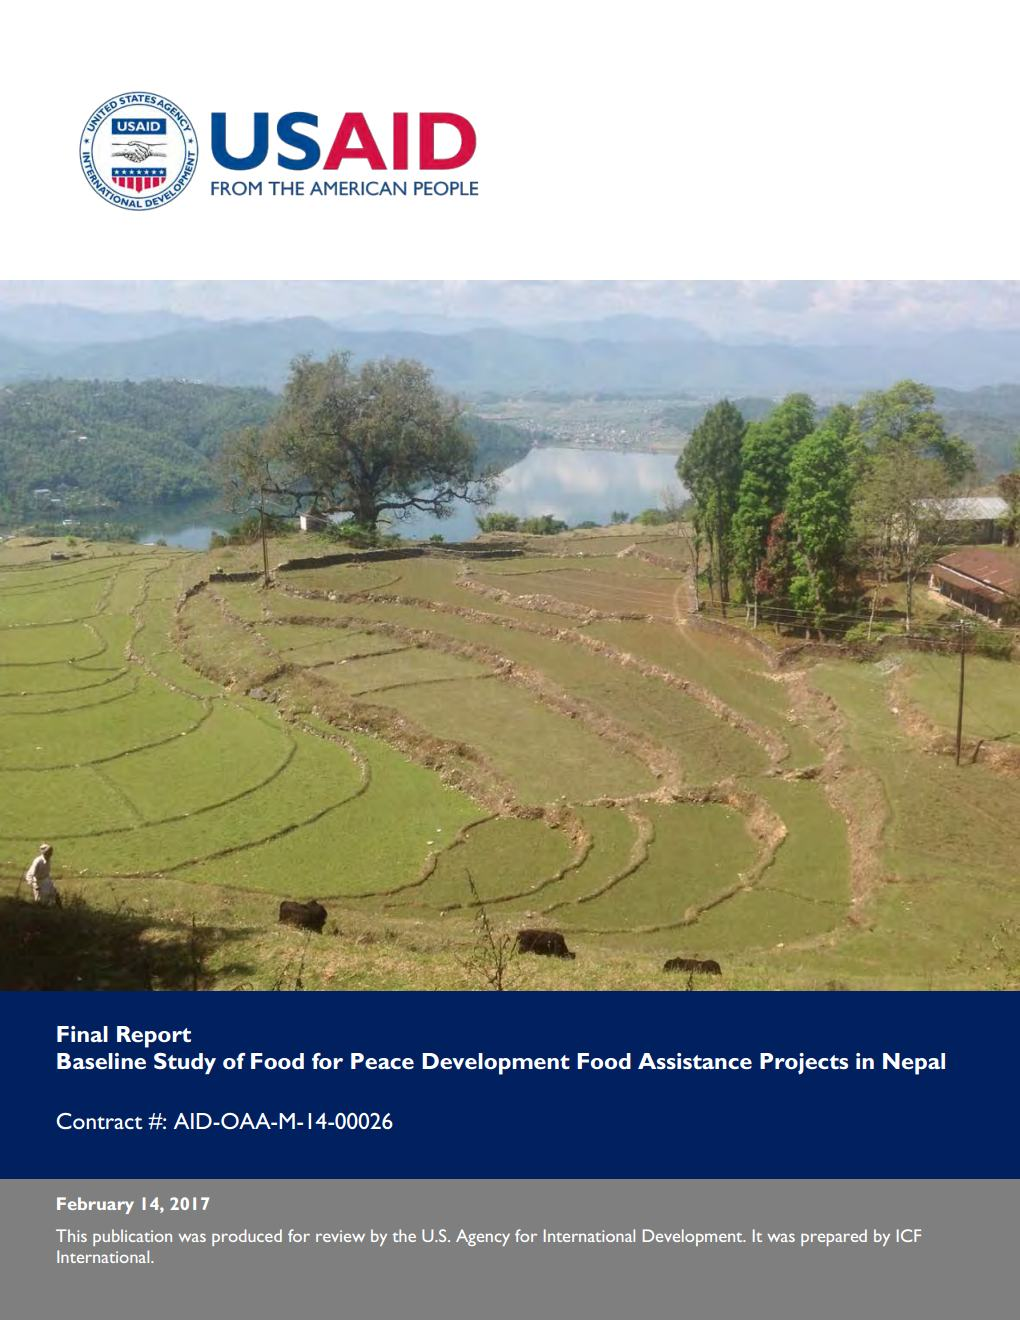 Baseline Study of Food for Peace Development Food Assistance Projects in Nepal